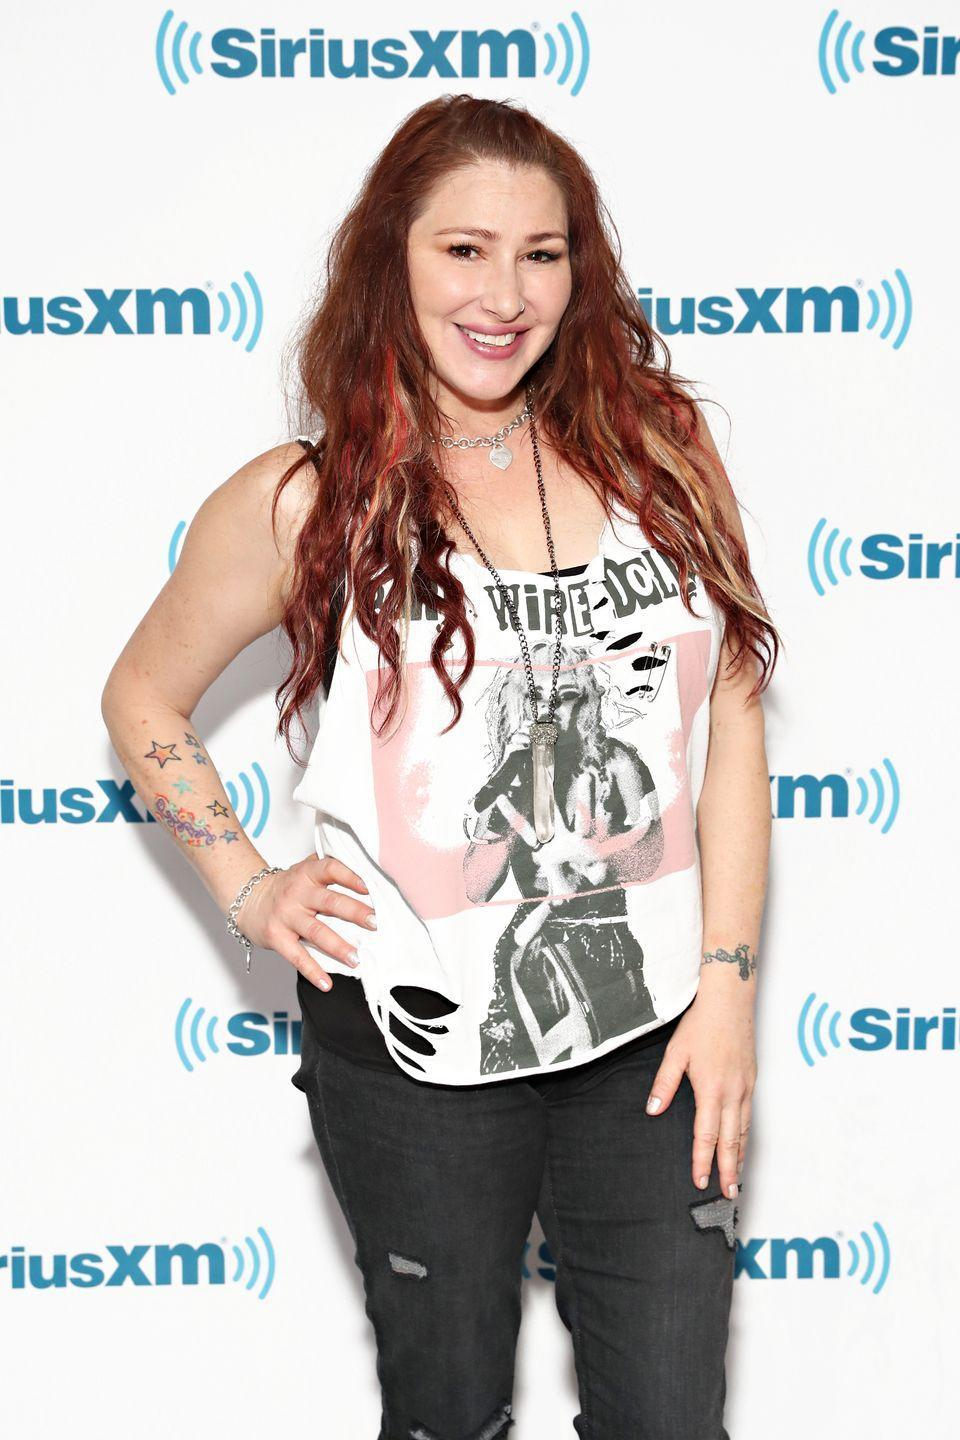 "<p>In 2015, the '80s pop sensation decided to pivot into fashion and retail, opening a boutique in East Nashville. Unfortunately, the store closed later that year, as <a href=""https://twitter.com/tiffanytunes/status/664281837976465408?lang=en"" rel=""nofollow noopener"" target=""_blank"" data-ylk=""slk:Tiffany shared on Twitter"" class=""link rapid-noclick-resp"">Tiffany shared on Twitter</a>. </p>"